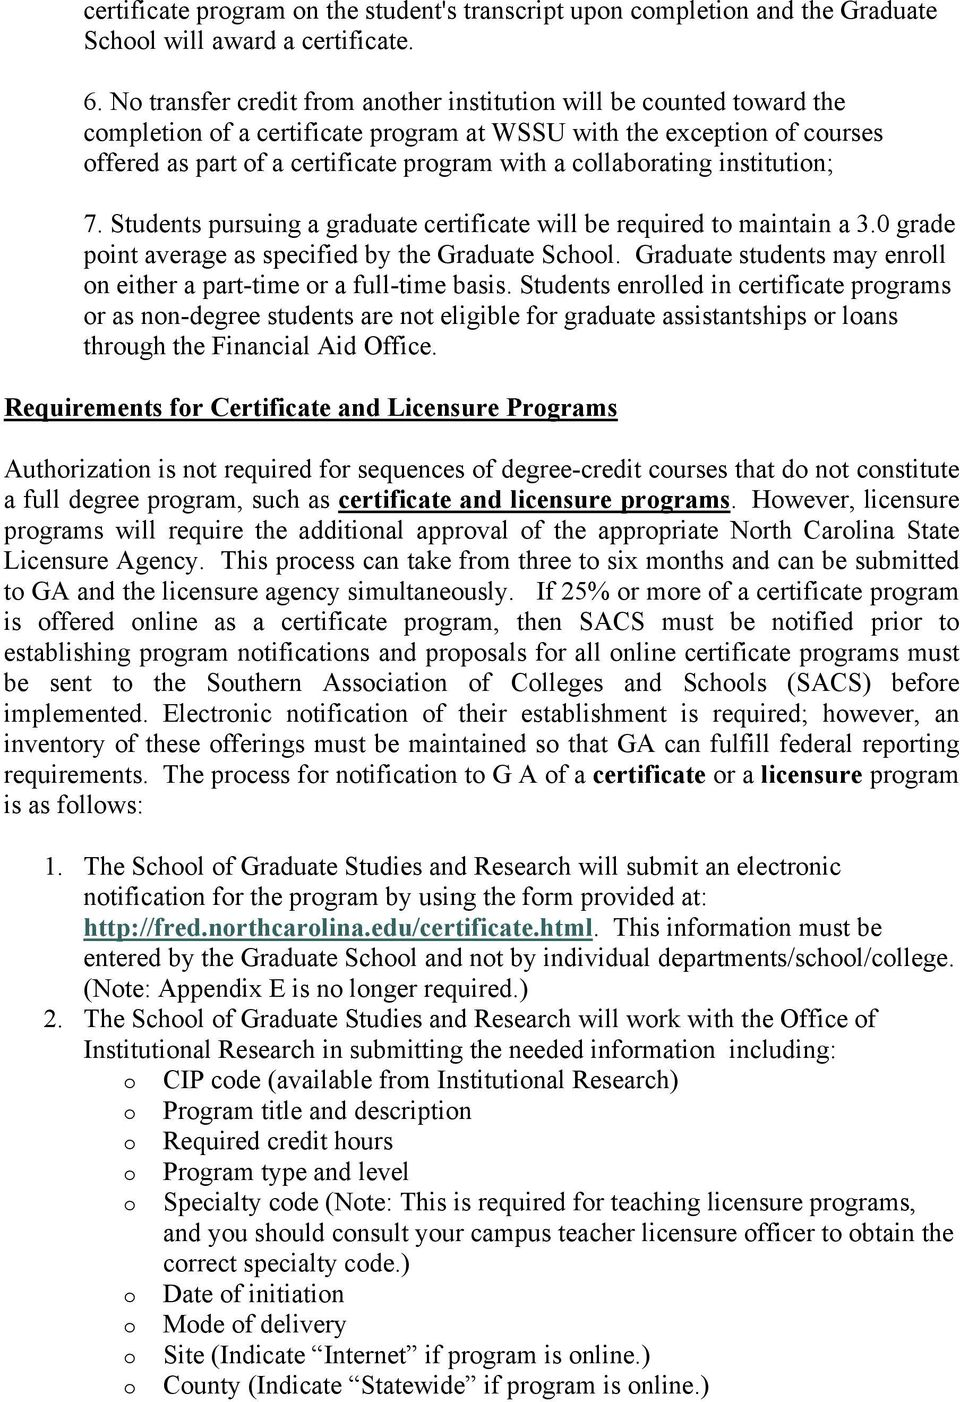 institutin; 7. Students pursuing a graduate certificate will be required t maintain a 3.0 grade pint average as specified by the Graduate Schl.